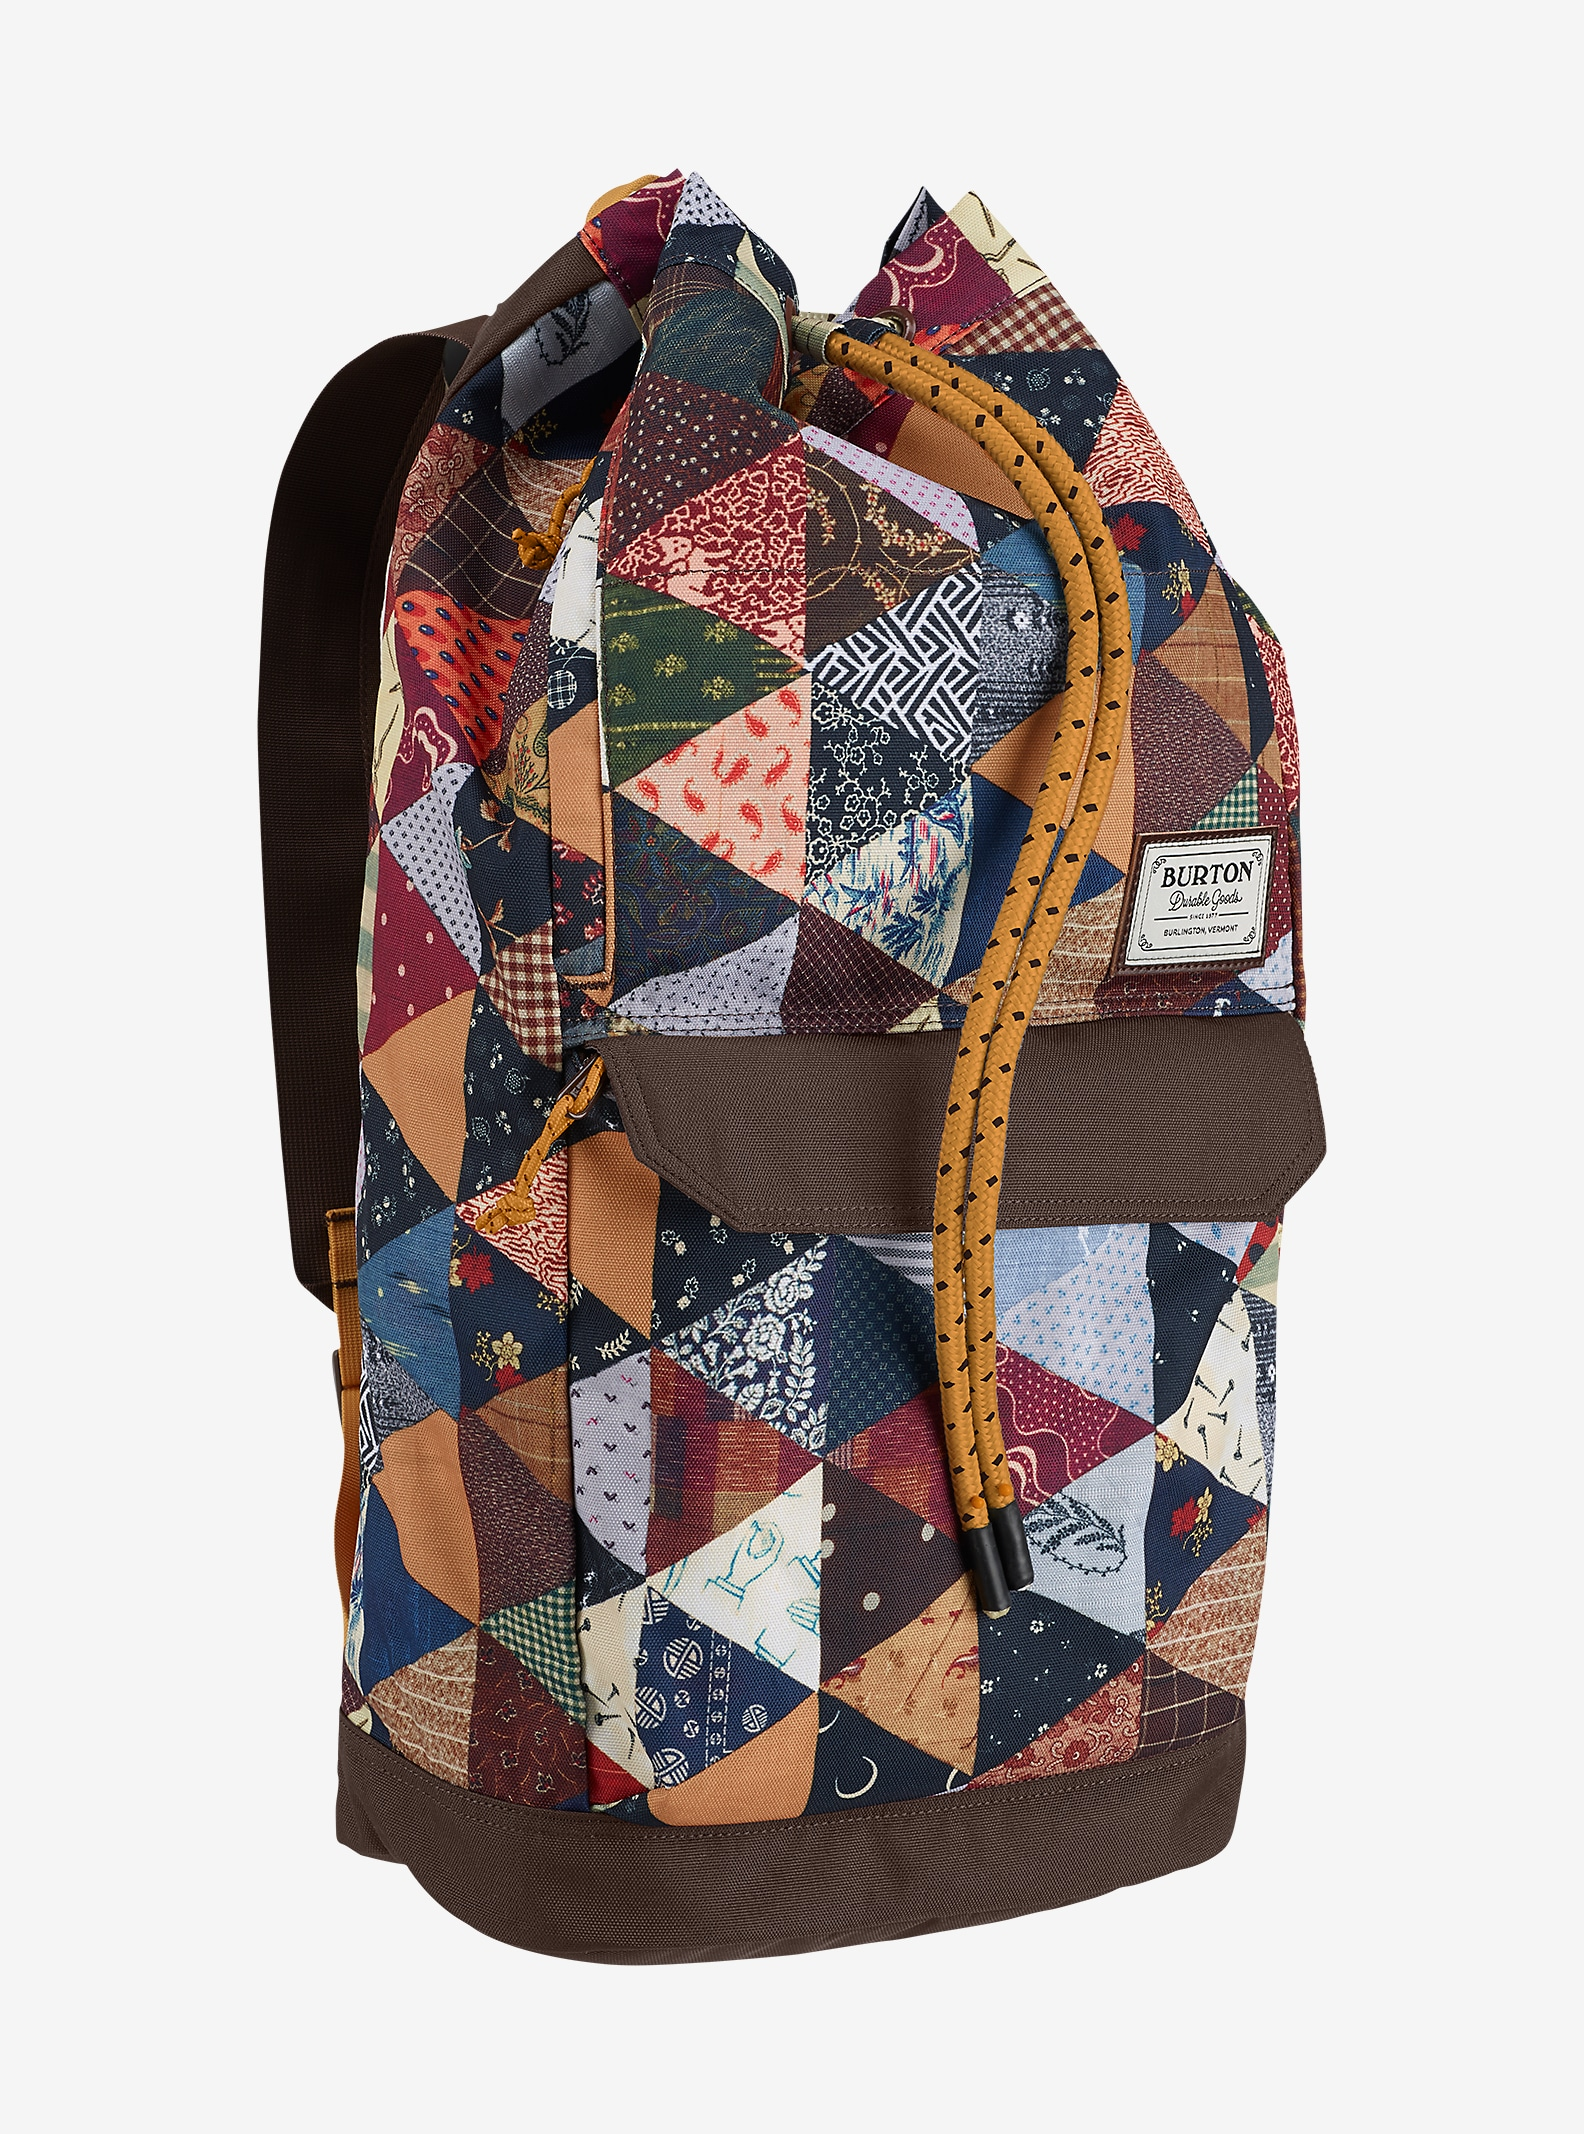 Burton Frontier Backpack shown in Kalidaquilt